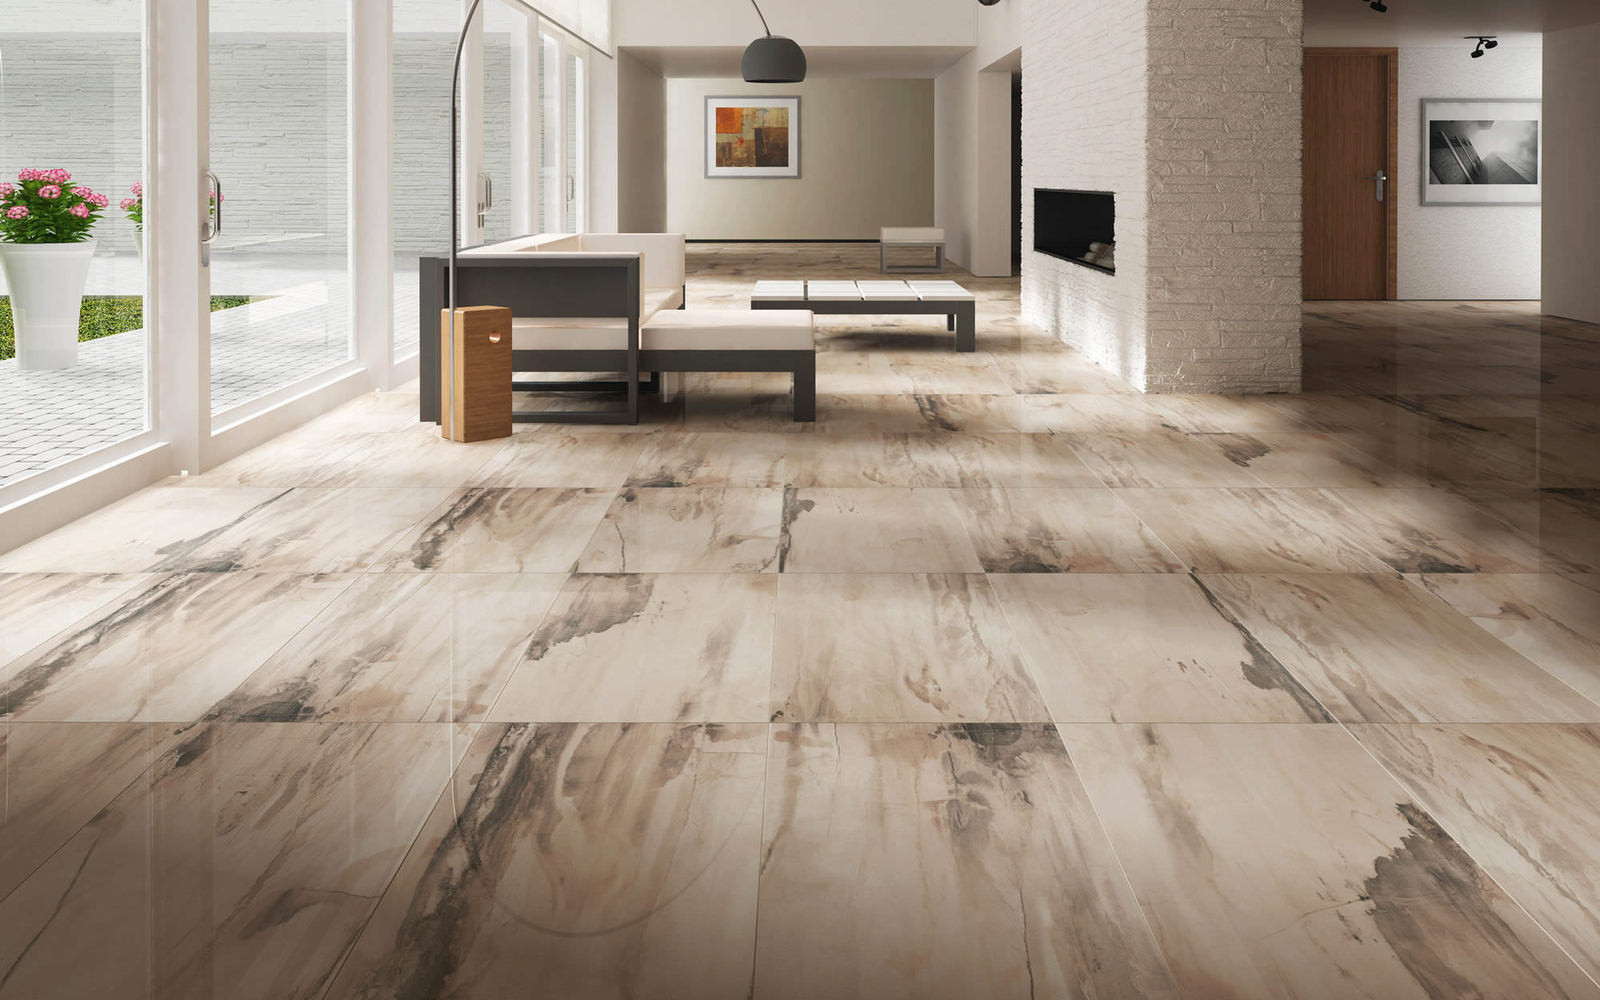 Best ideas about Living Room Flooring . Save or Pin 25 Beautiful Tile Flooring Ideas for Living Room Kitchen Now.